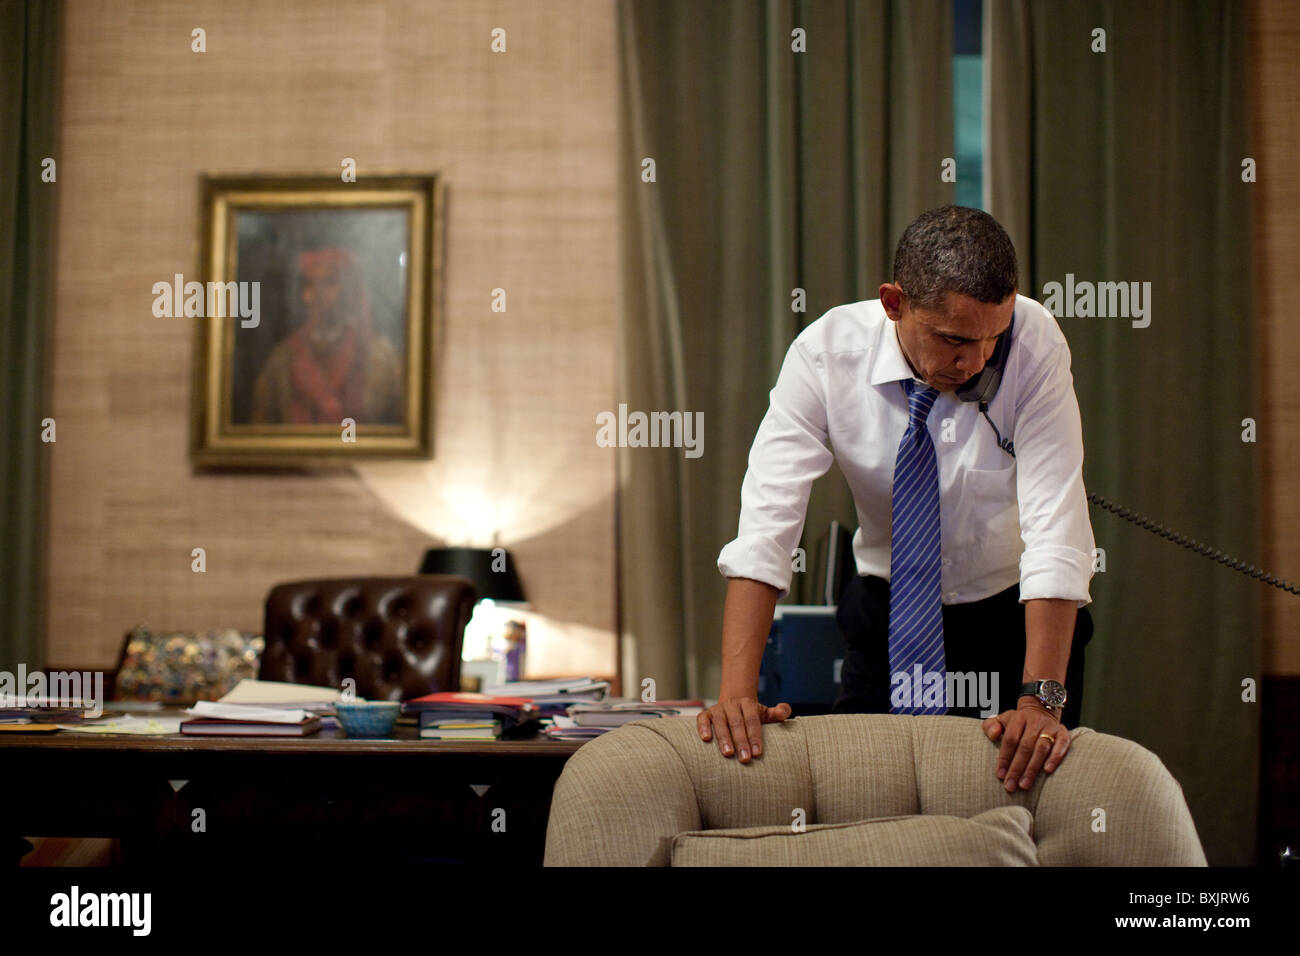 President Barack Obama talks on the phone - Stock Image